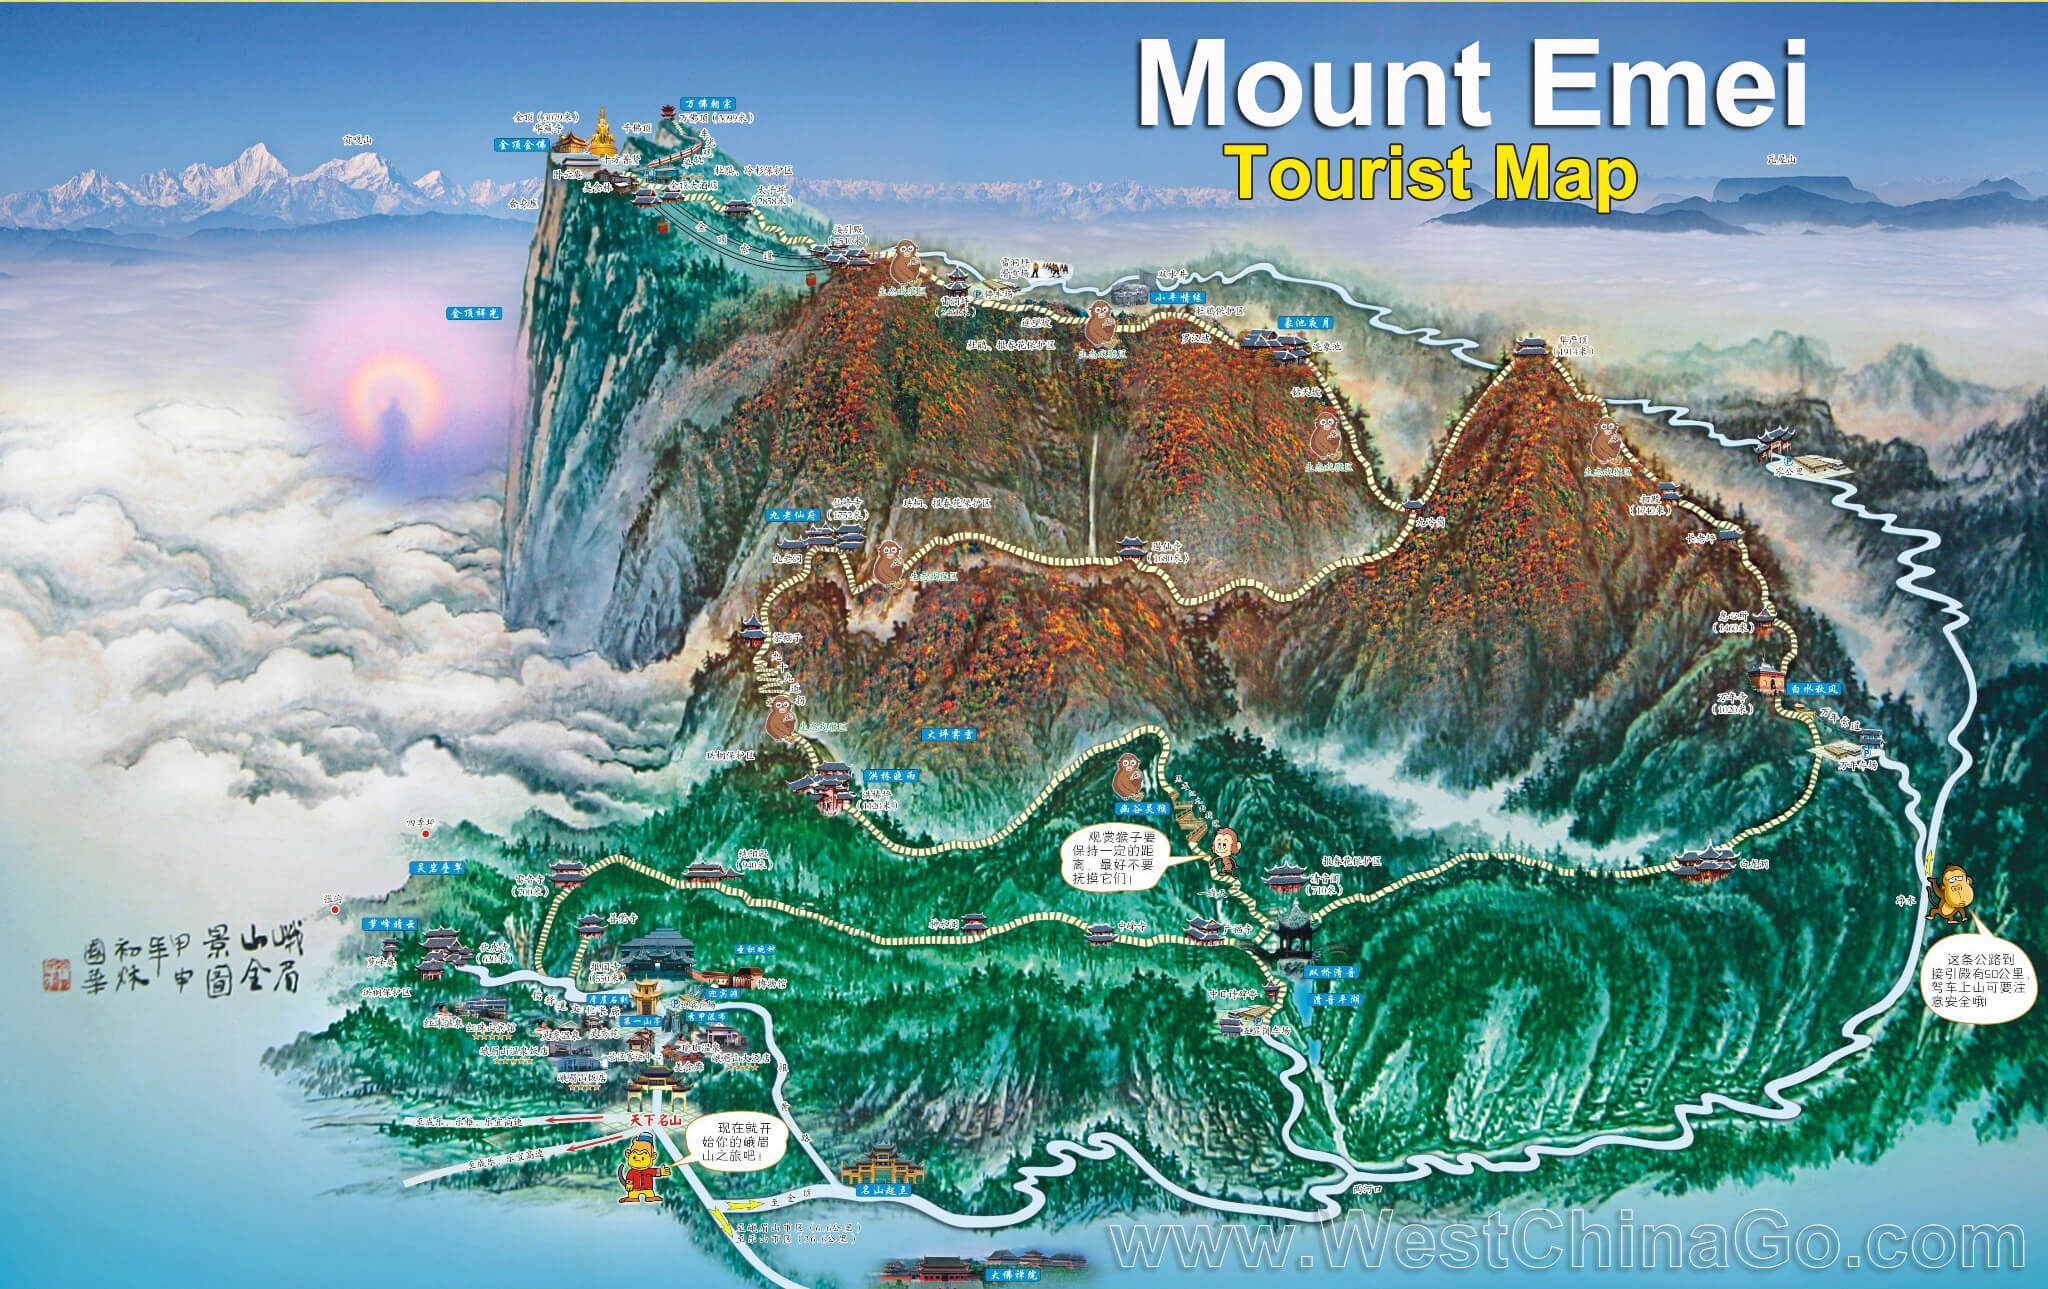 Mount Emei Tourist Map